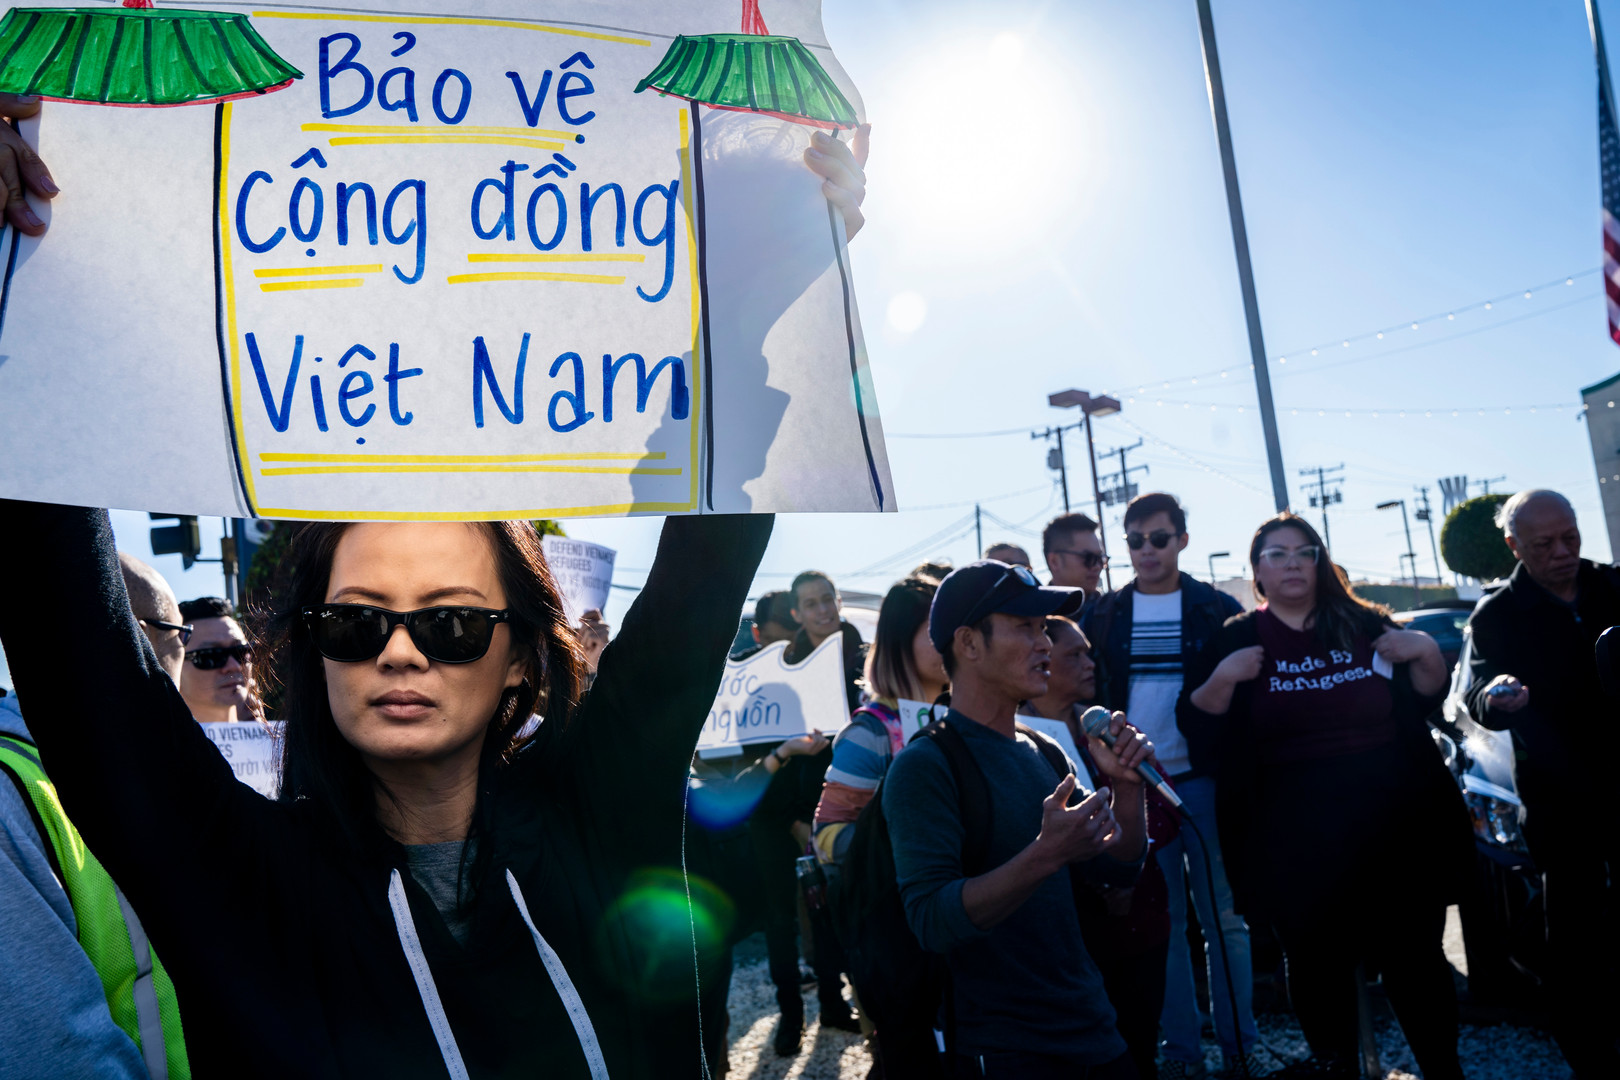 Thuy Vo Dang, 39, protests in Westminister, California against the Trump administration's possible re-interpretation of a 2008 agreement protecting Vietnamese immigrants arriving before 1995.